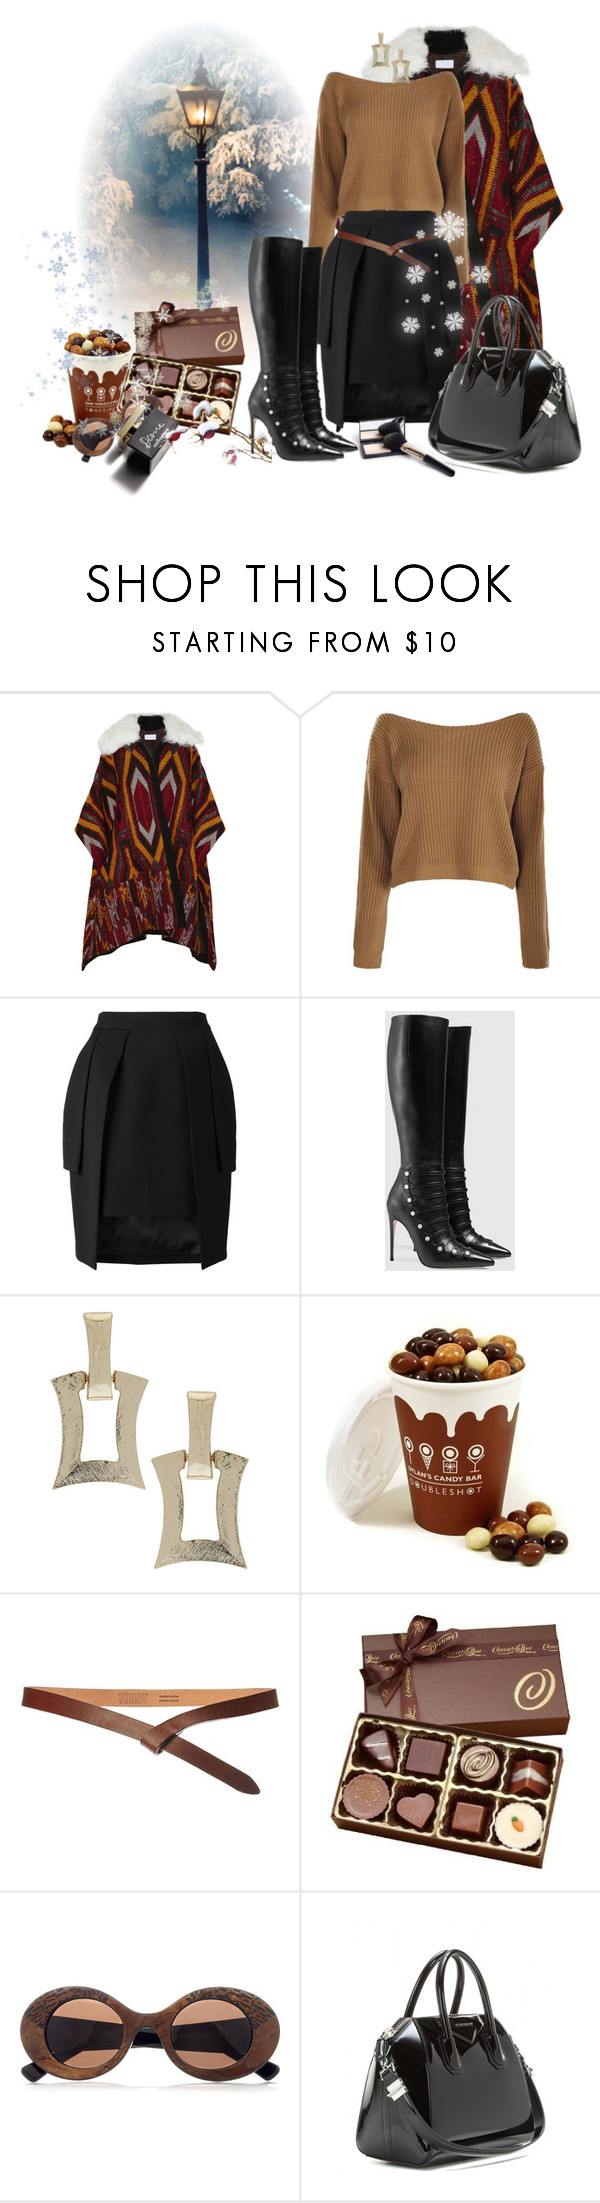 упуп by perelka111 on Polyvore featuring Chloé, STRATEAS.CARLUCCI, Gucci, Givenchy, Cutler and Gross, Toast, Dylan's Candy Bar and D&G